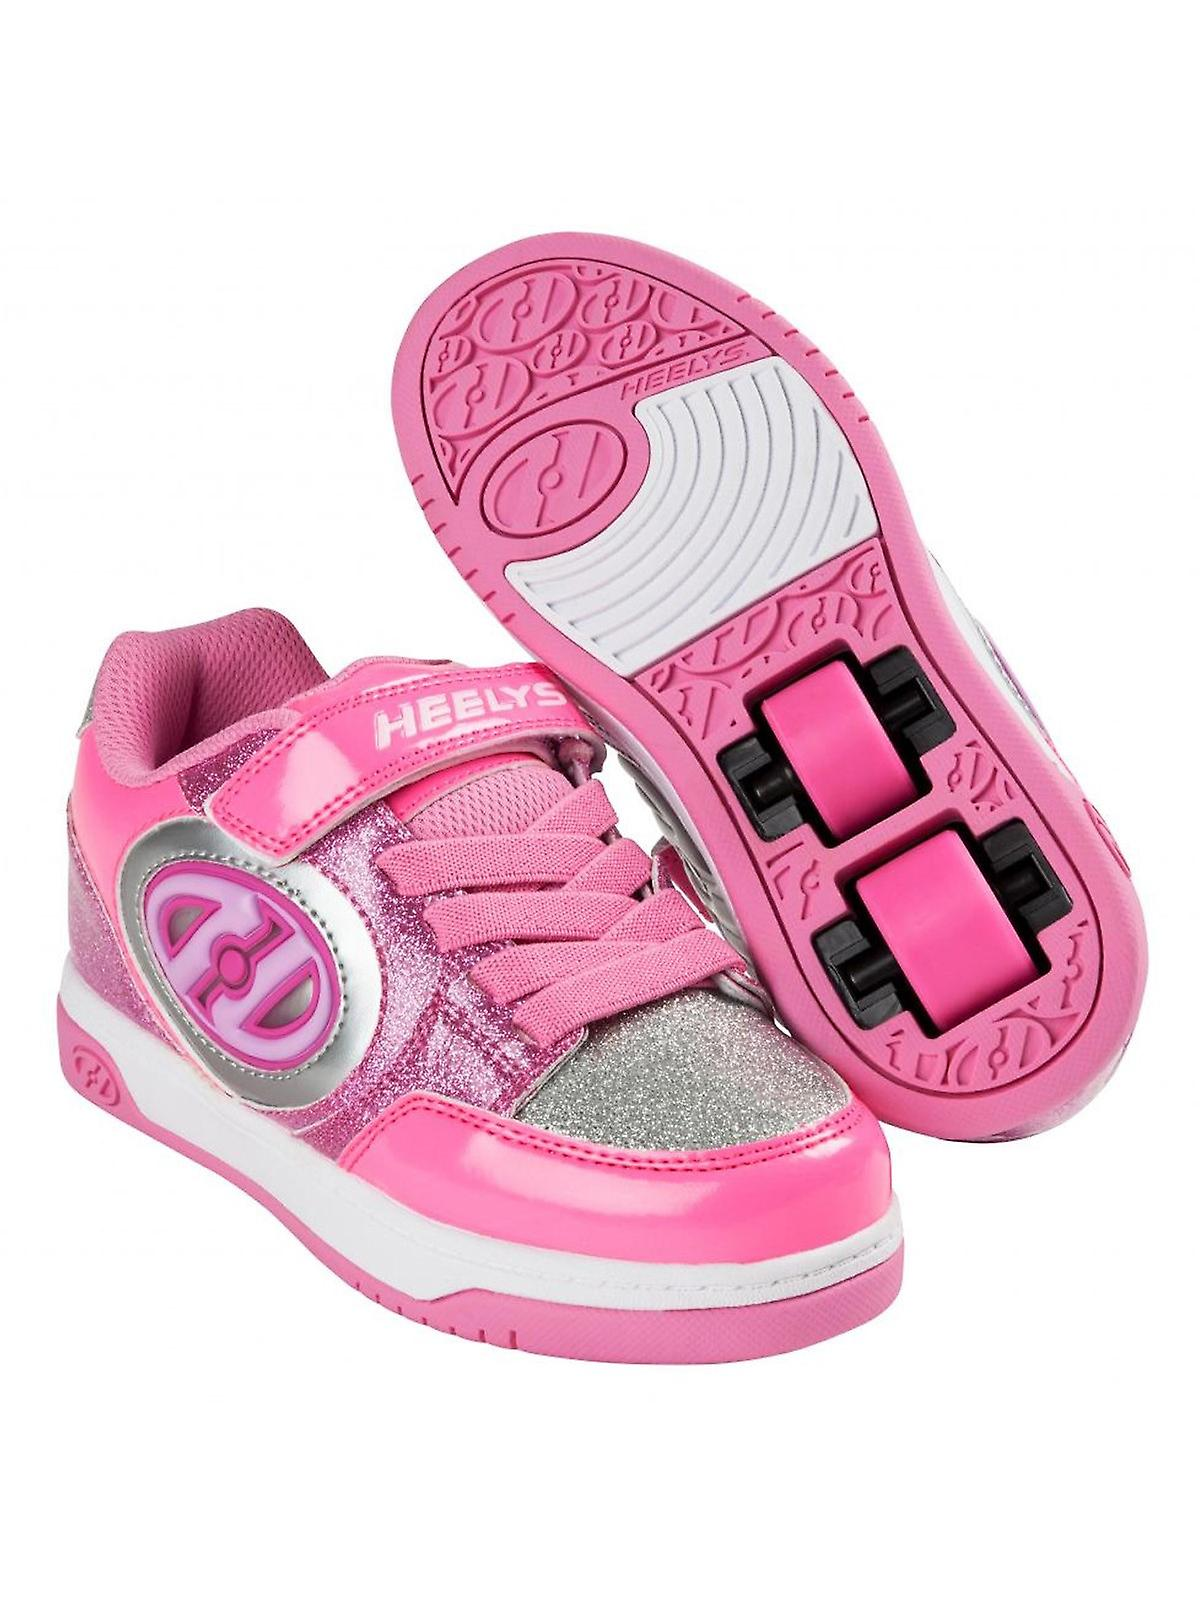 low priced 4876d d639a Heelys Neon Pink-Light Pink-Silver Plus Lighted Girls Two Wheel Shoe